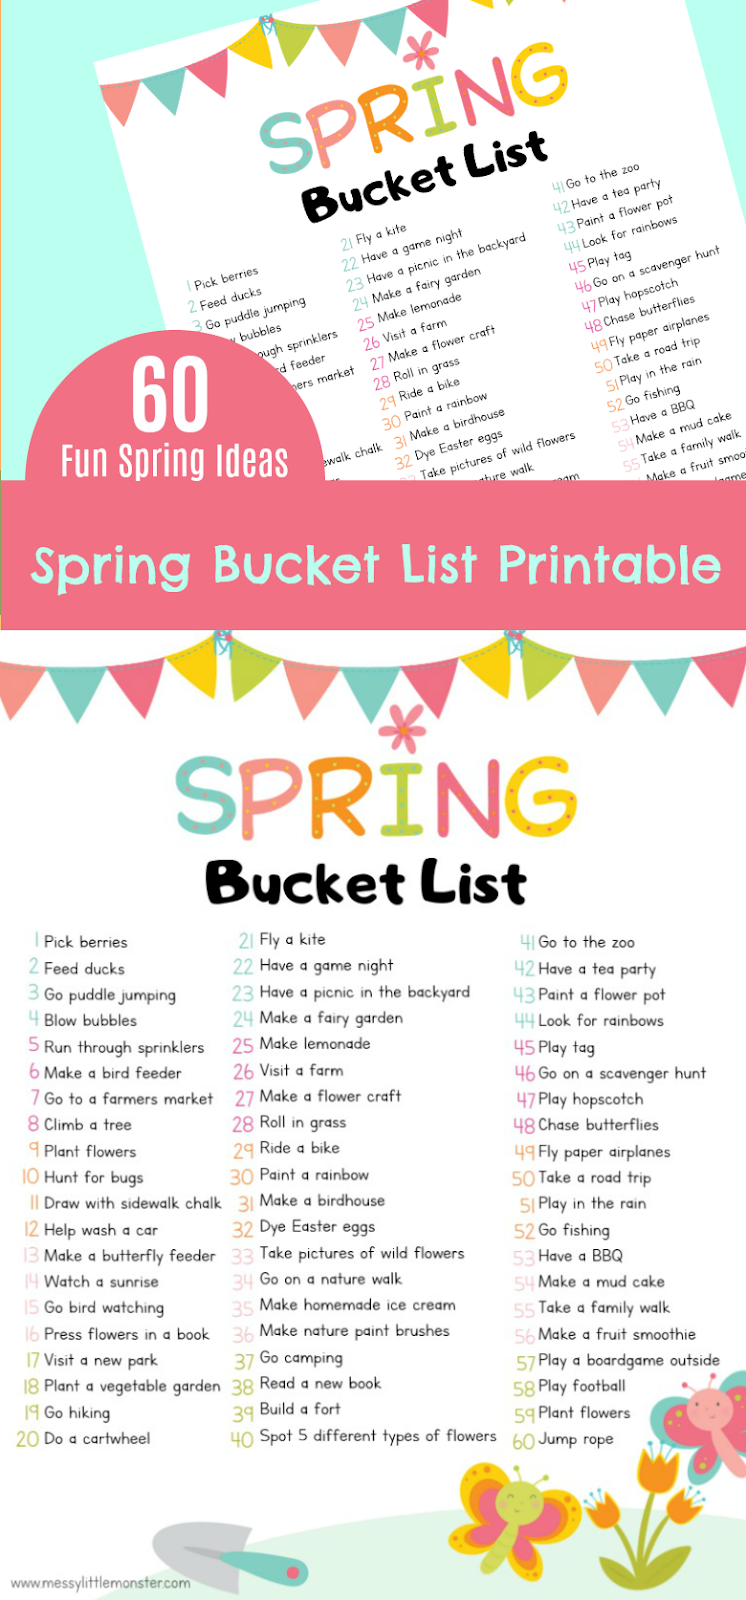 Printable spring bucket list for kids. 60 of the best spring activity ideas for kids to enjoy.